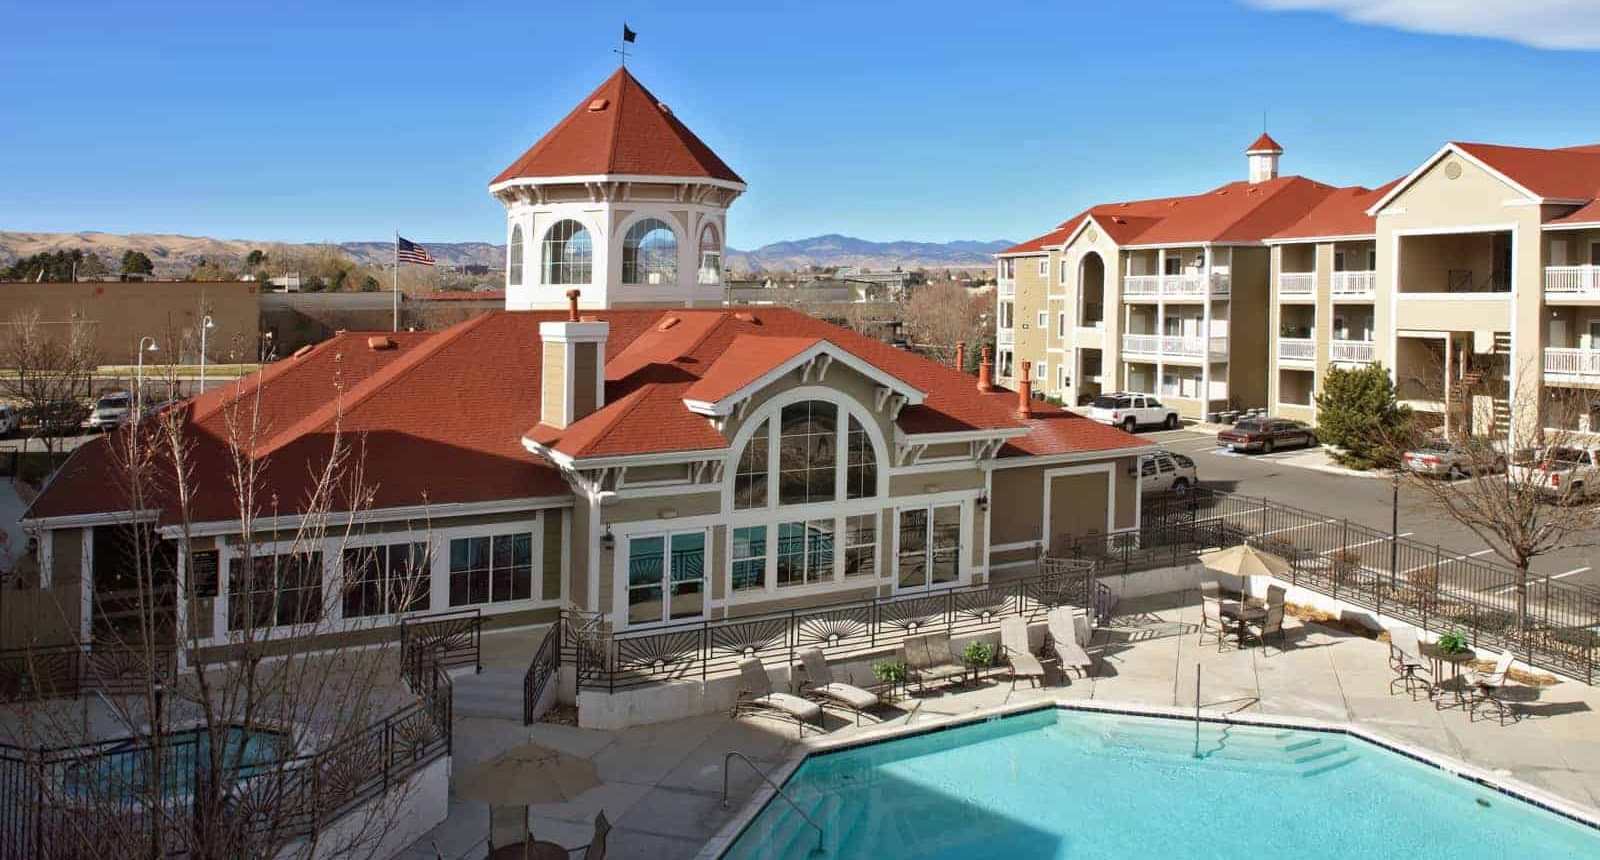 View of the apartment complex with pool in the foreground.